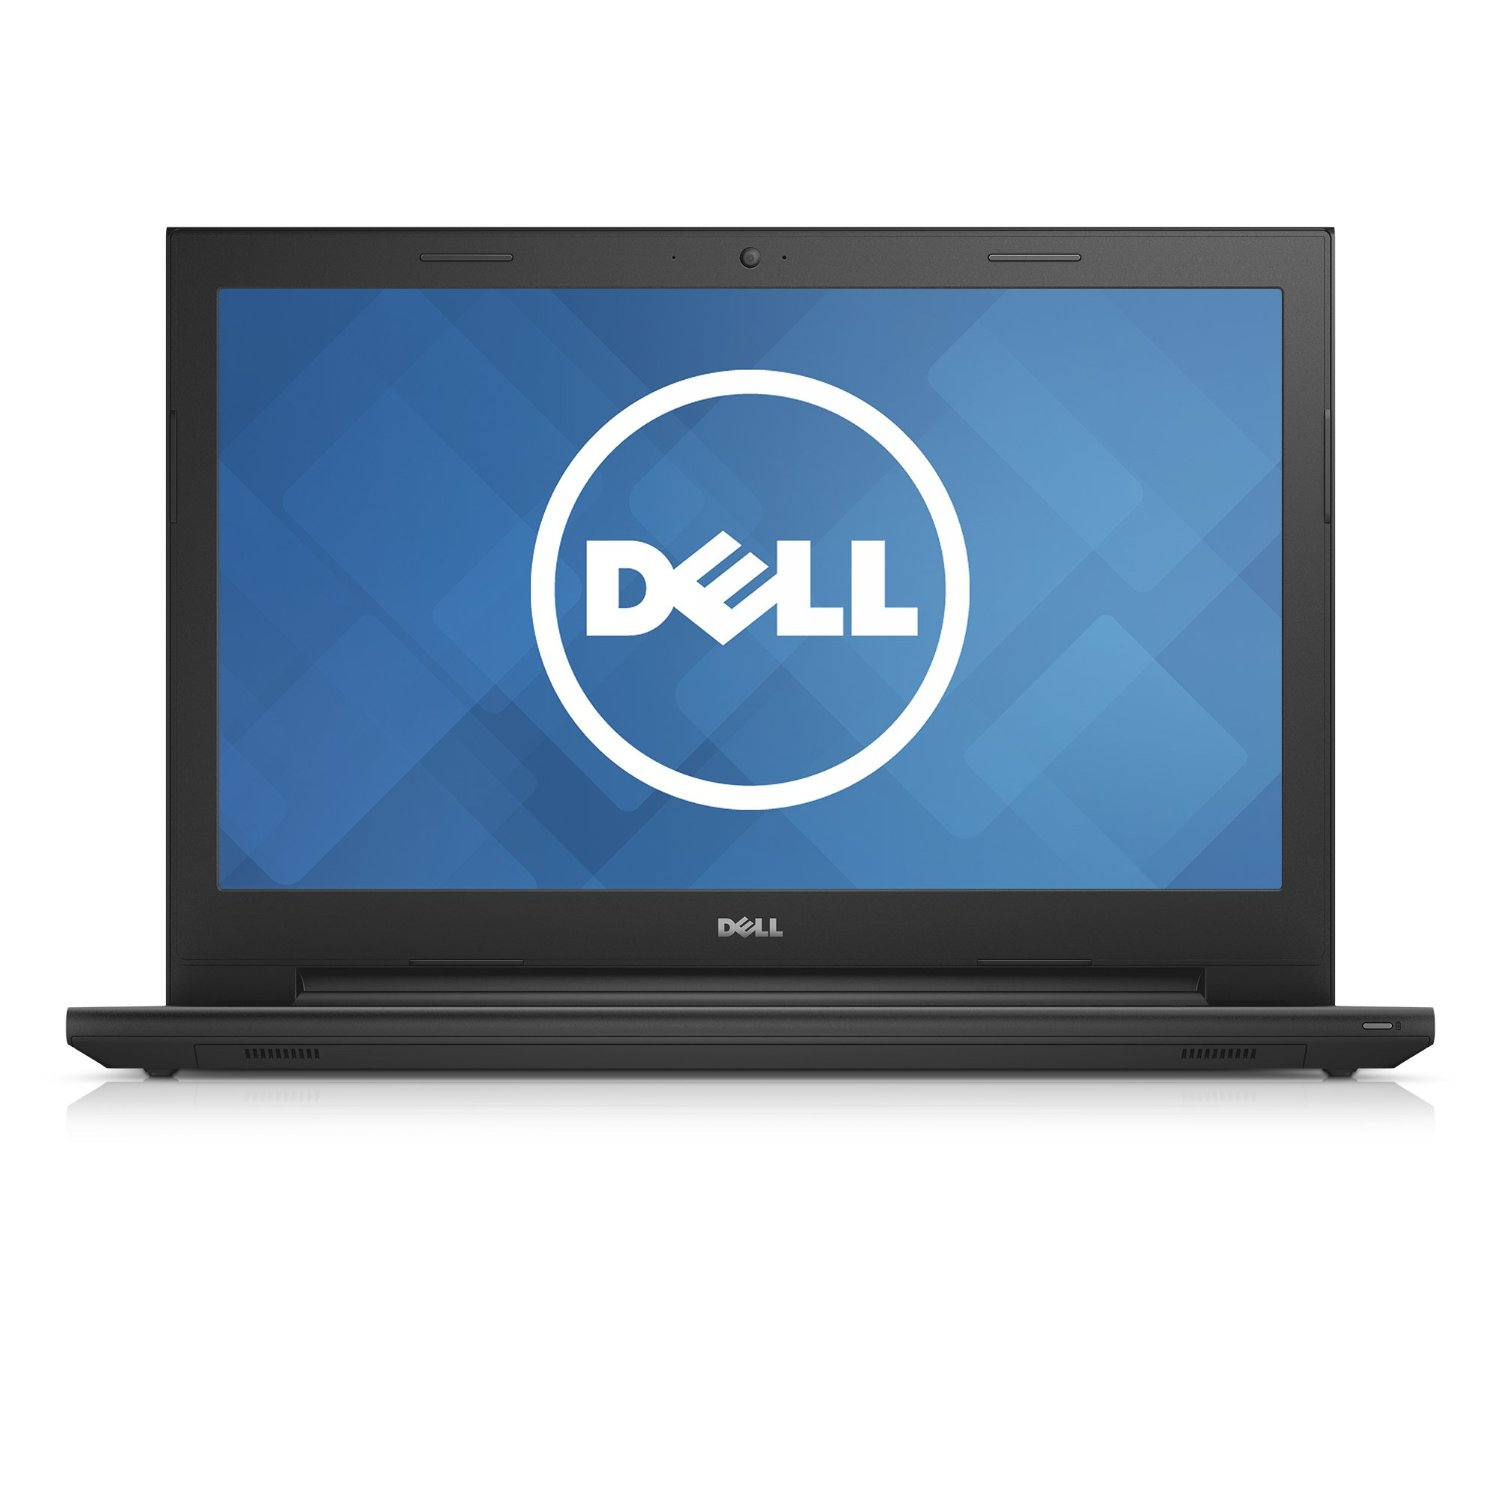 Dell inspiron 3558-dos black